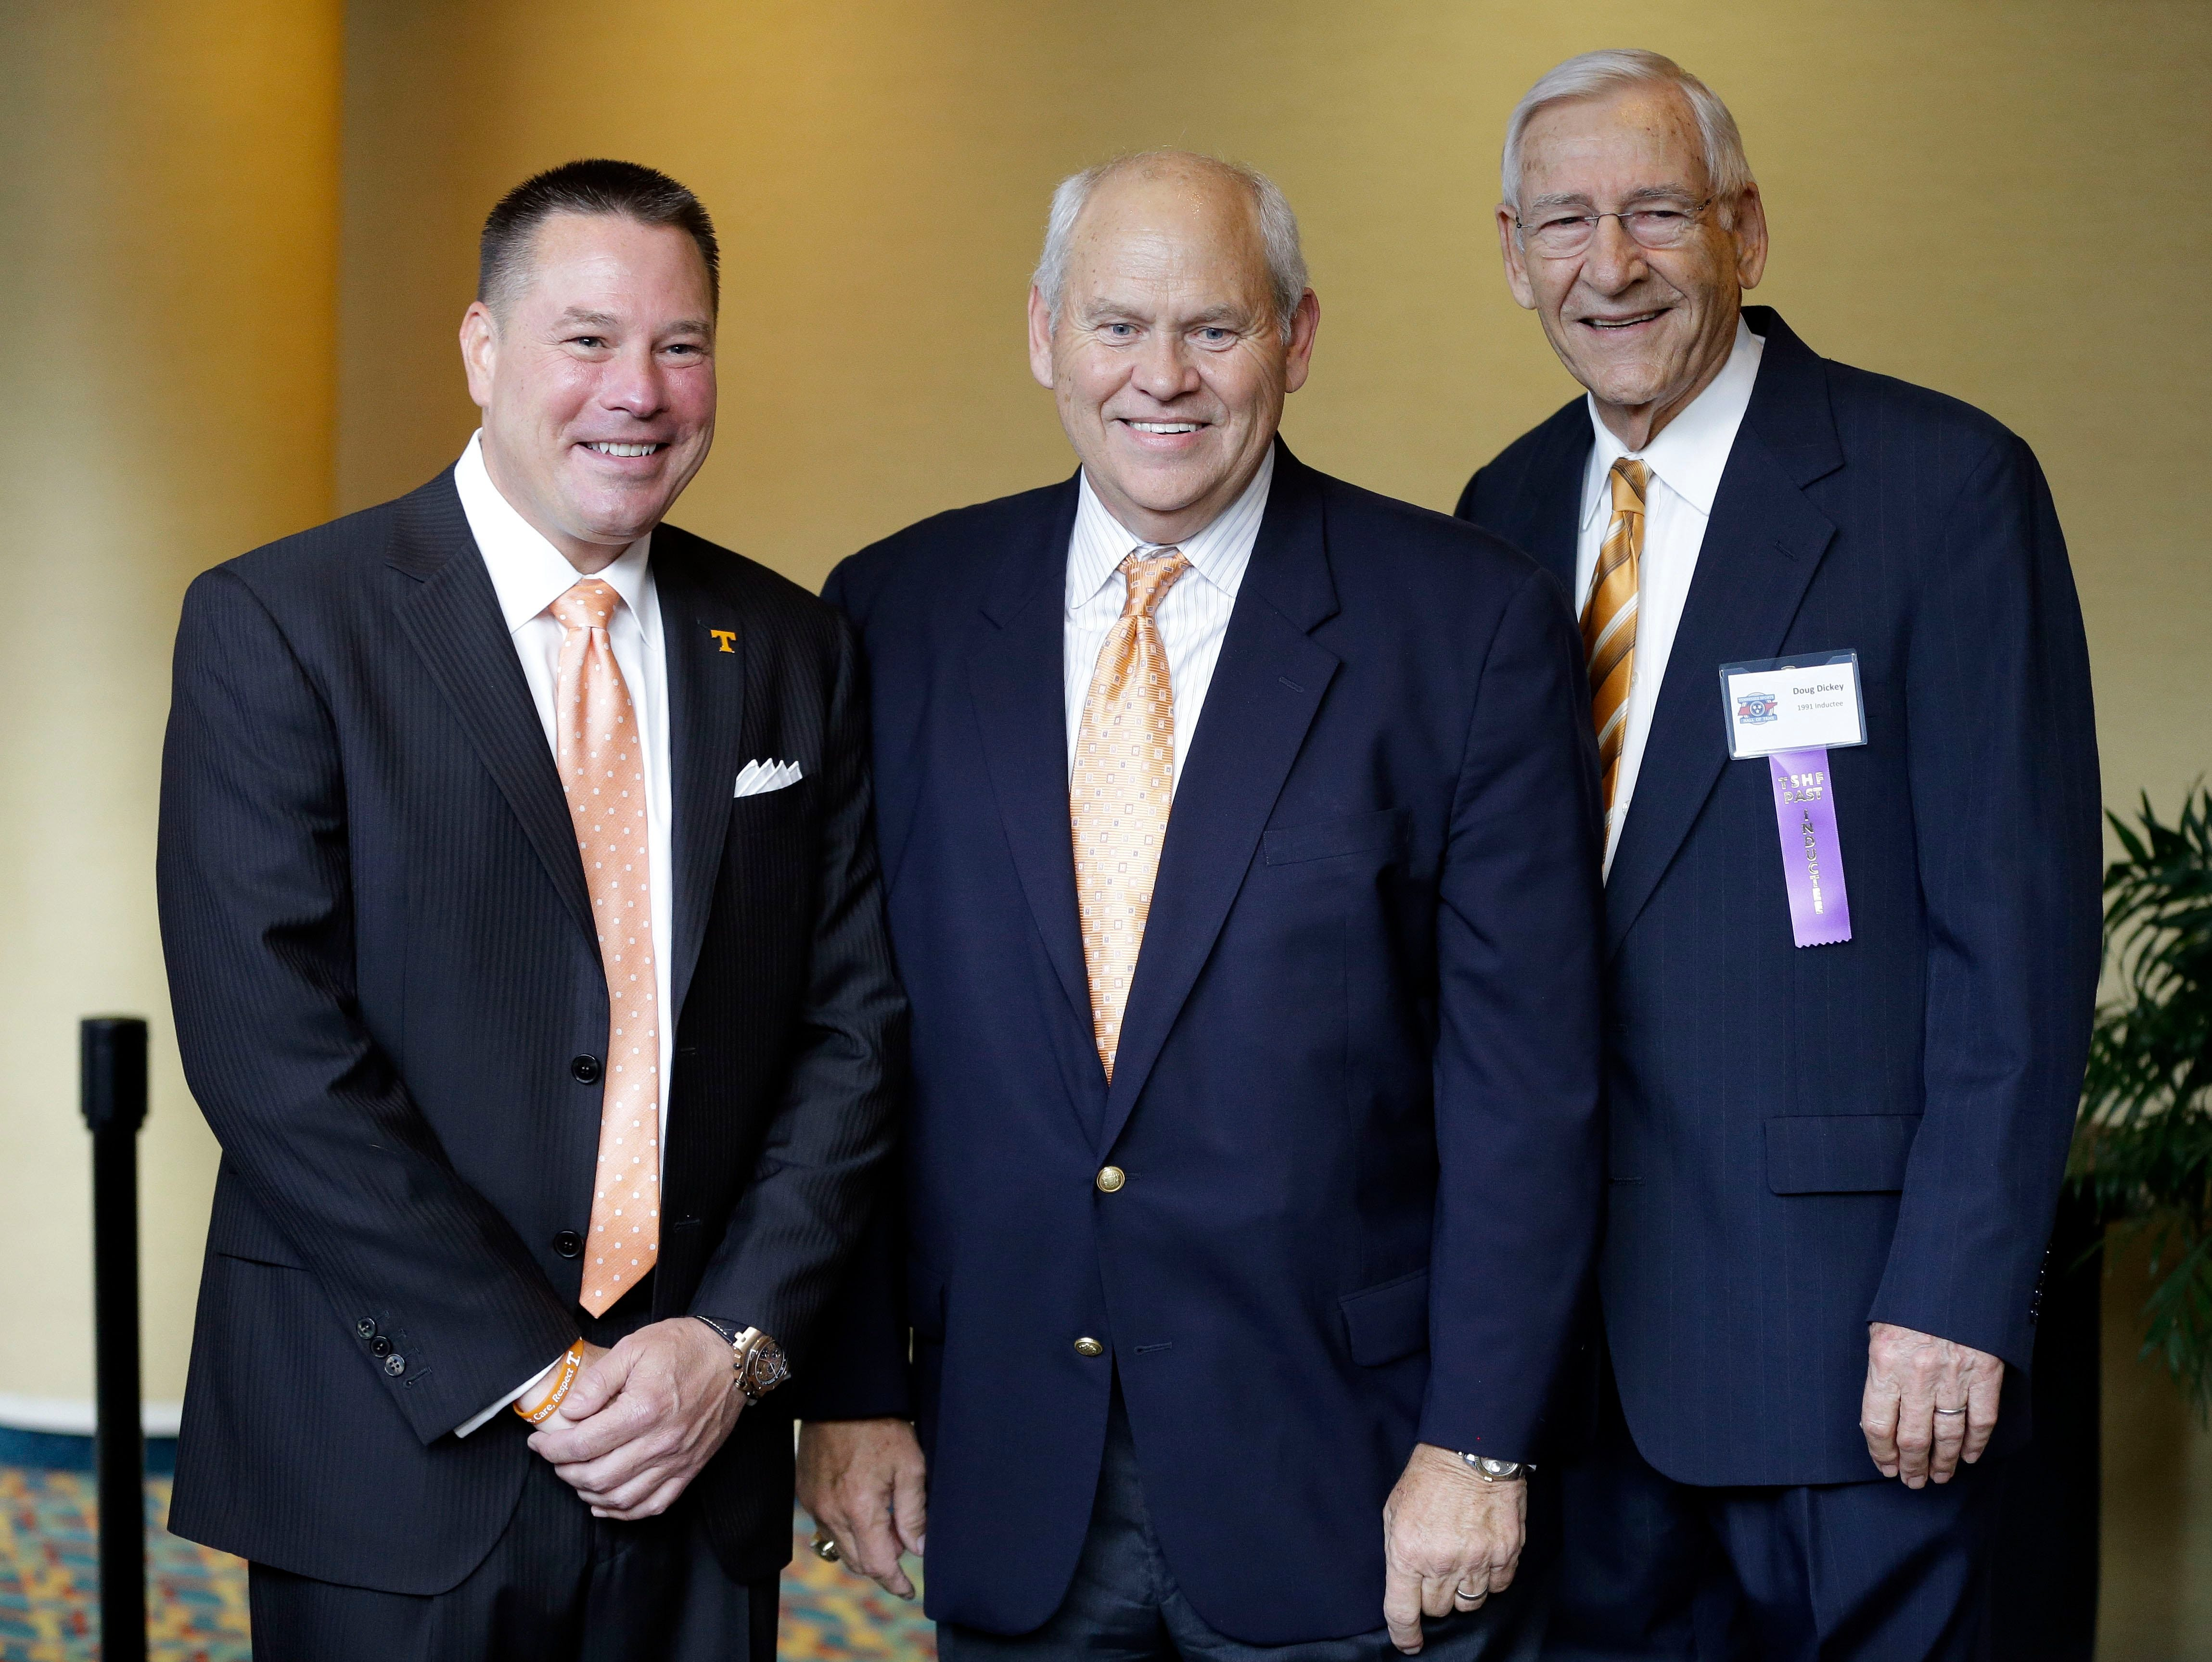 Tennessee football coach Butch Jones, left, poses with former Tennessee coaches Phil Fulmer, center, and Doug Dickey before the inductions to the Tennessee Sports Hall of Fame on  Saturday, May 17, 2014, in Nashville, Tenn.